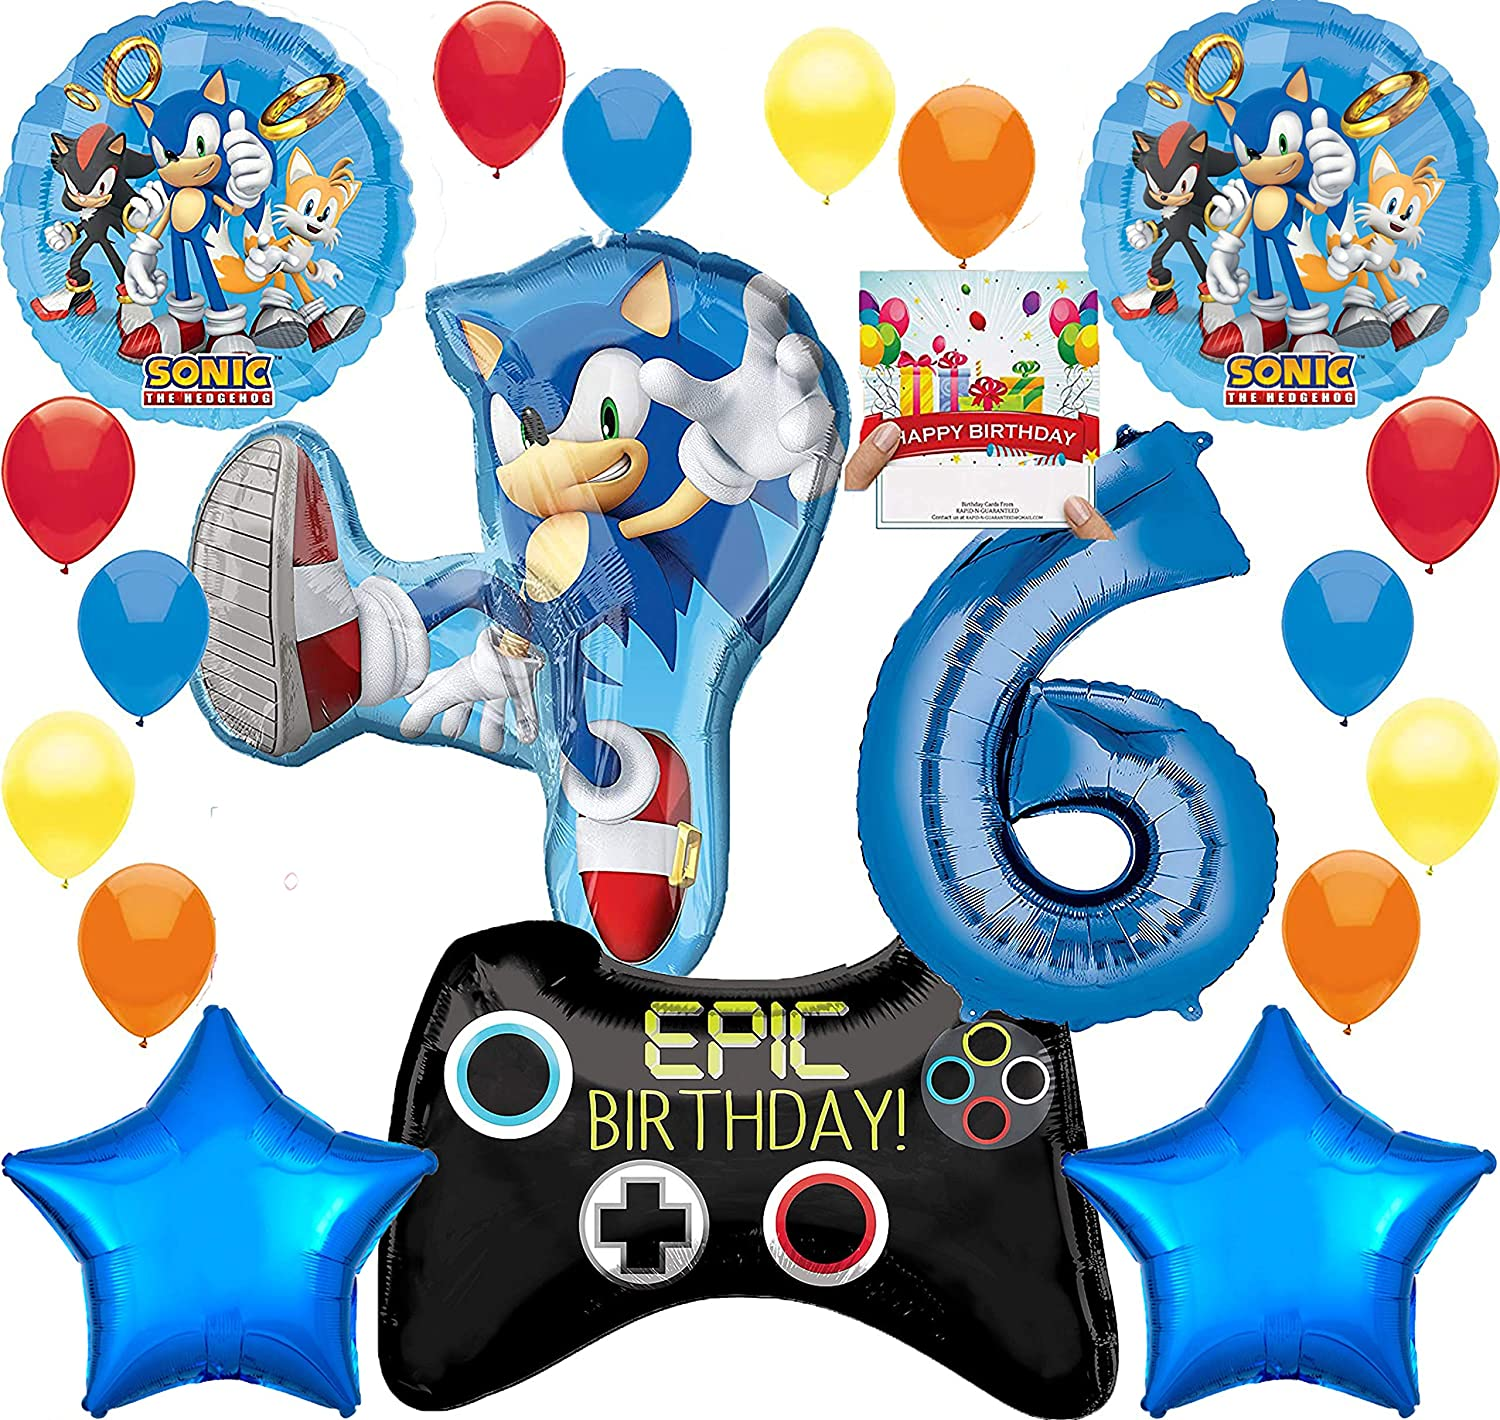 Amazon Com Sonic The Hedgehog Party Supplies Gamers 6th Birthday Balloon Decoration Bundle With Birthday Card By Rapidnguaranteed Toys Games